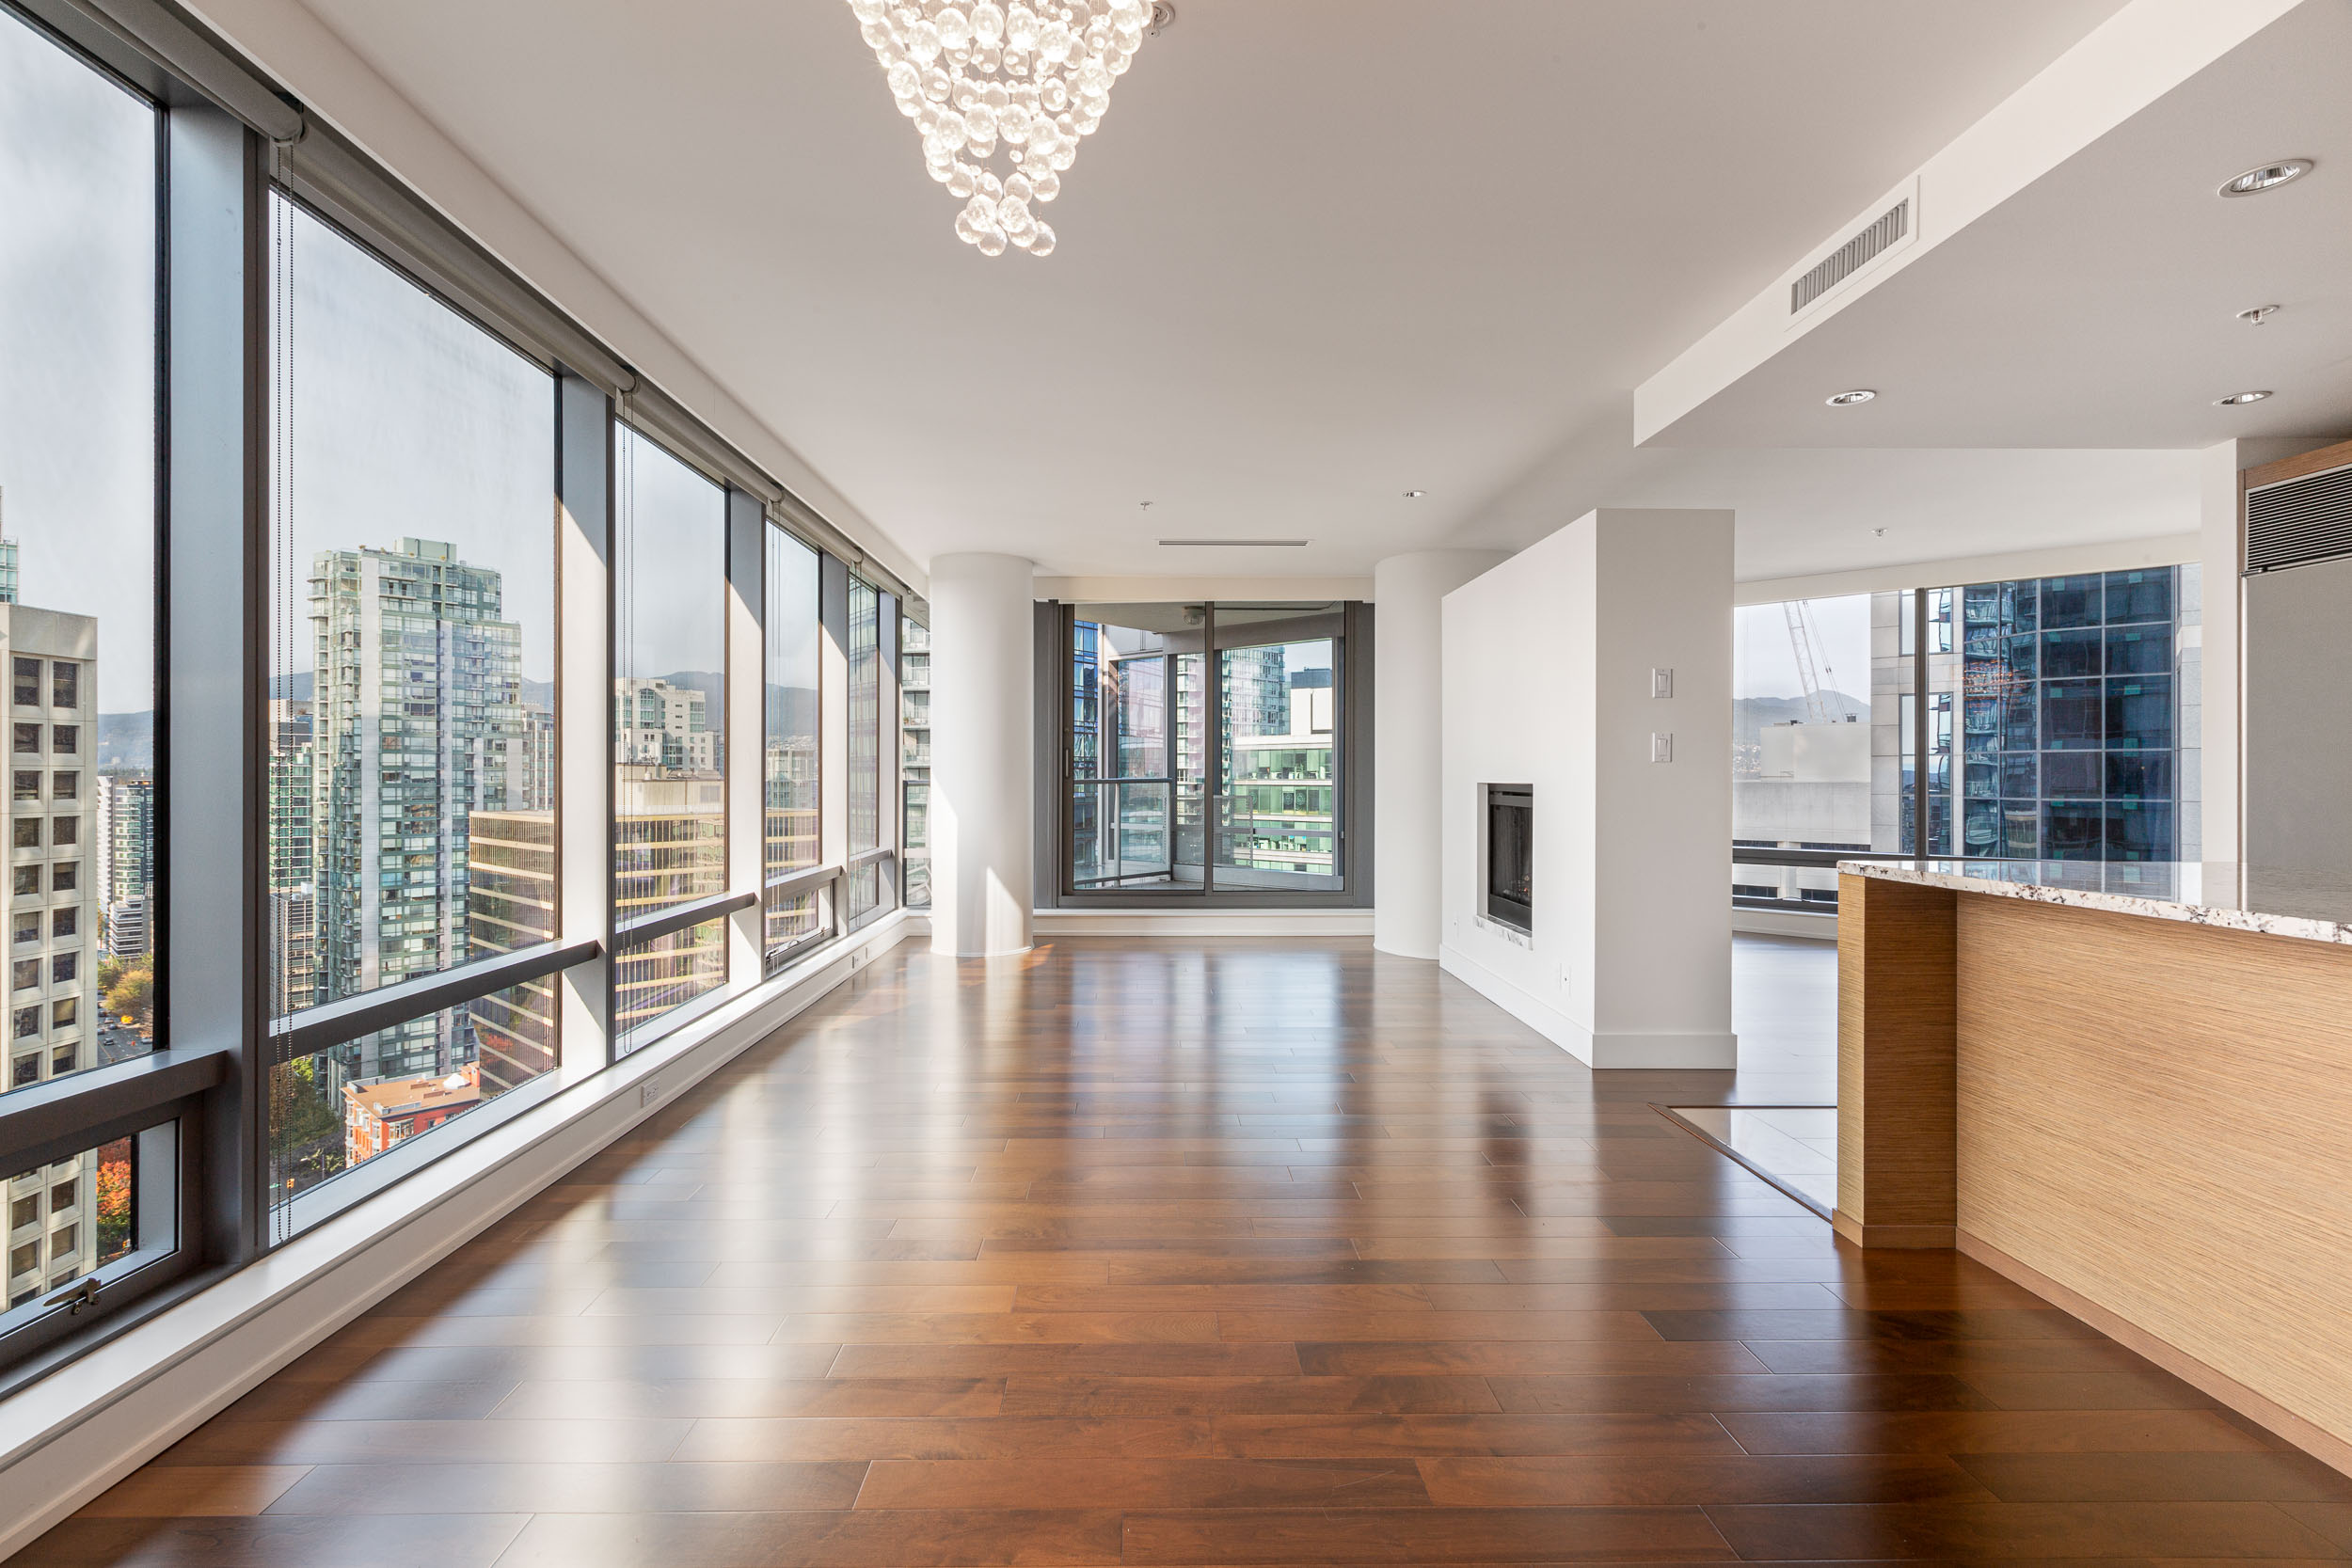 UNFURNISHED TWO BEDROOM UNIT IN THE LIVING SHANGRI-LA VANCOUVER